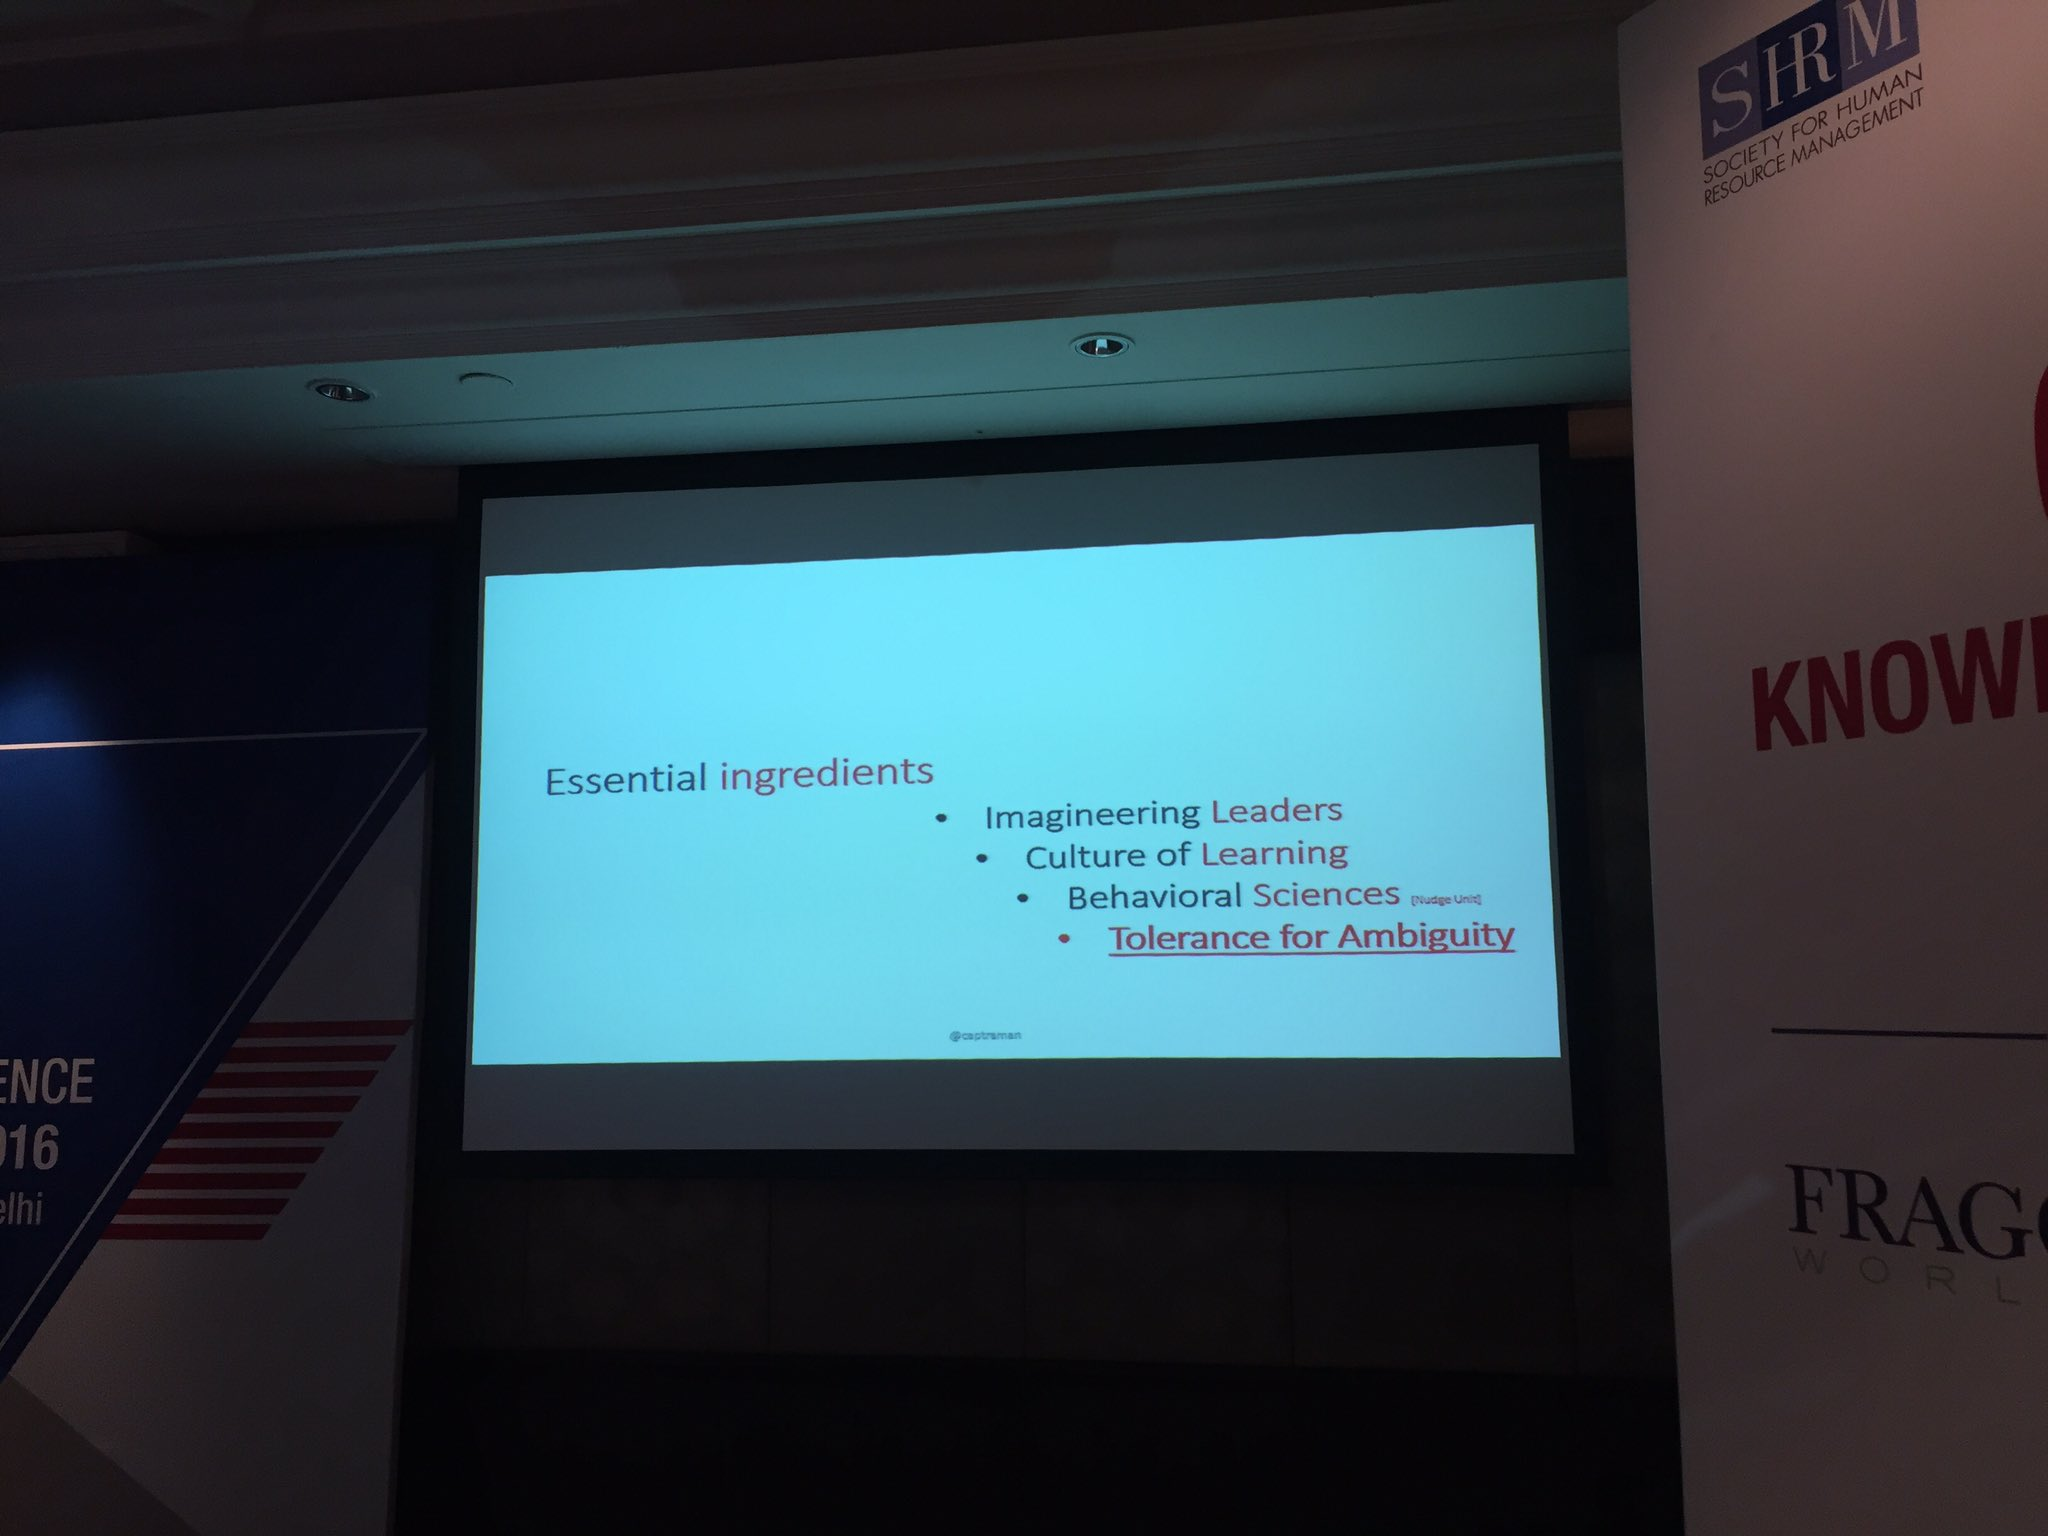 The essential ingredients of creating a VUCA world, as described by @captraman. @fragomen @indeed #SHRMI16 @HRPS https://t.co/TPzvnDEzzy